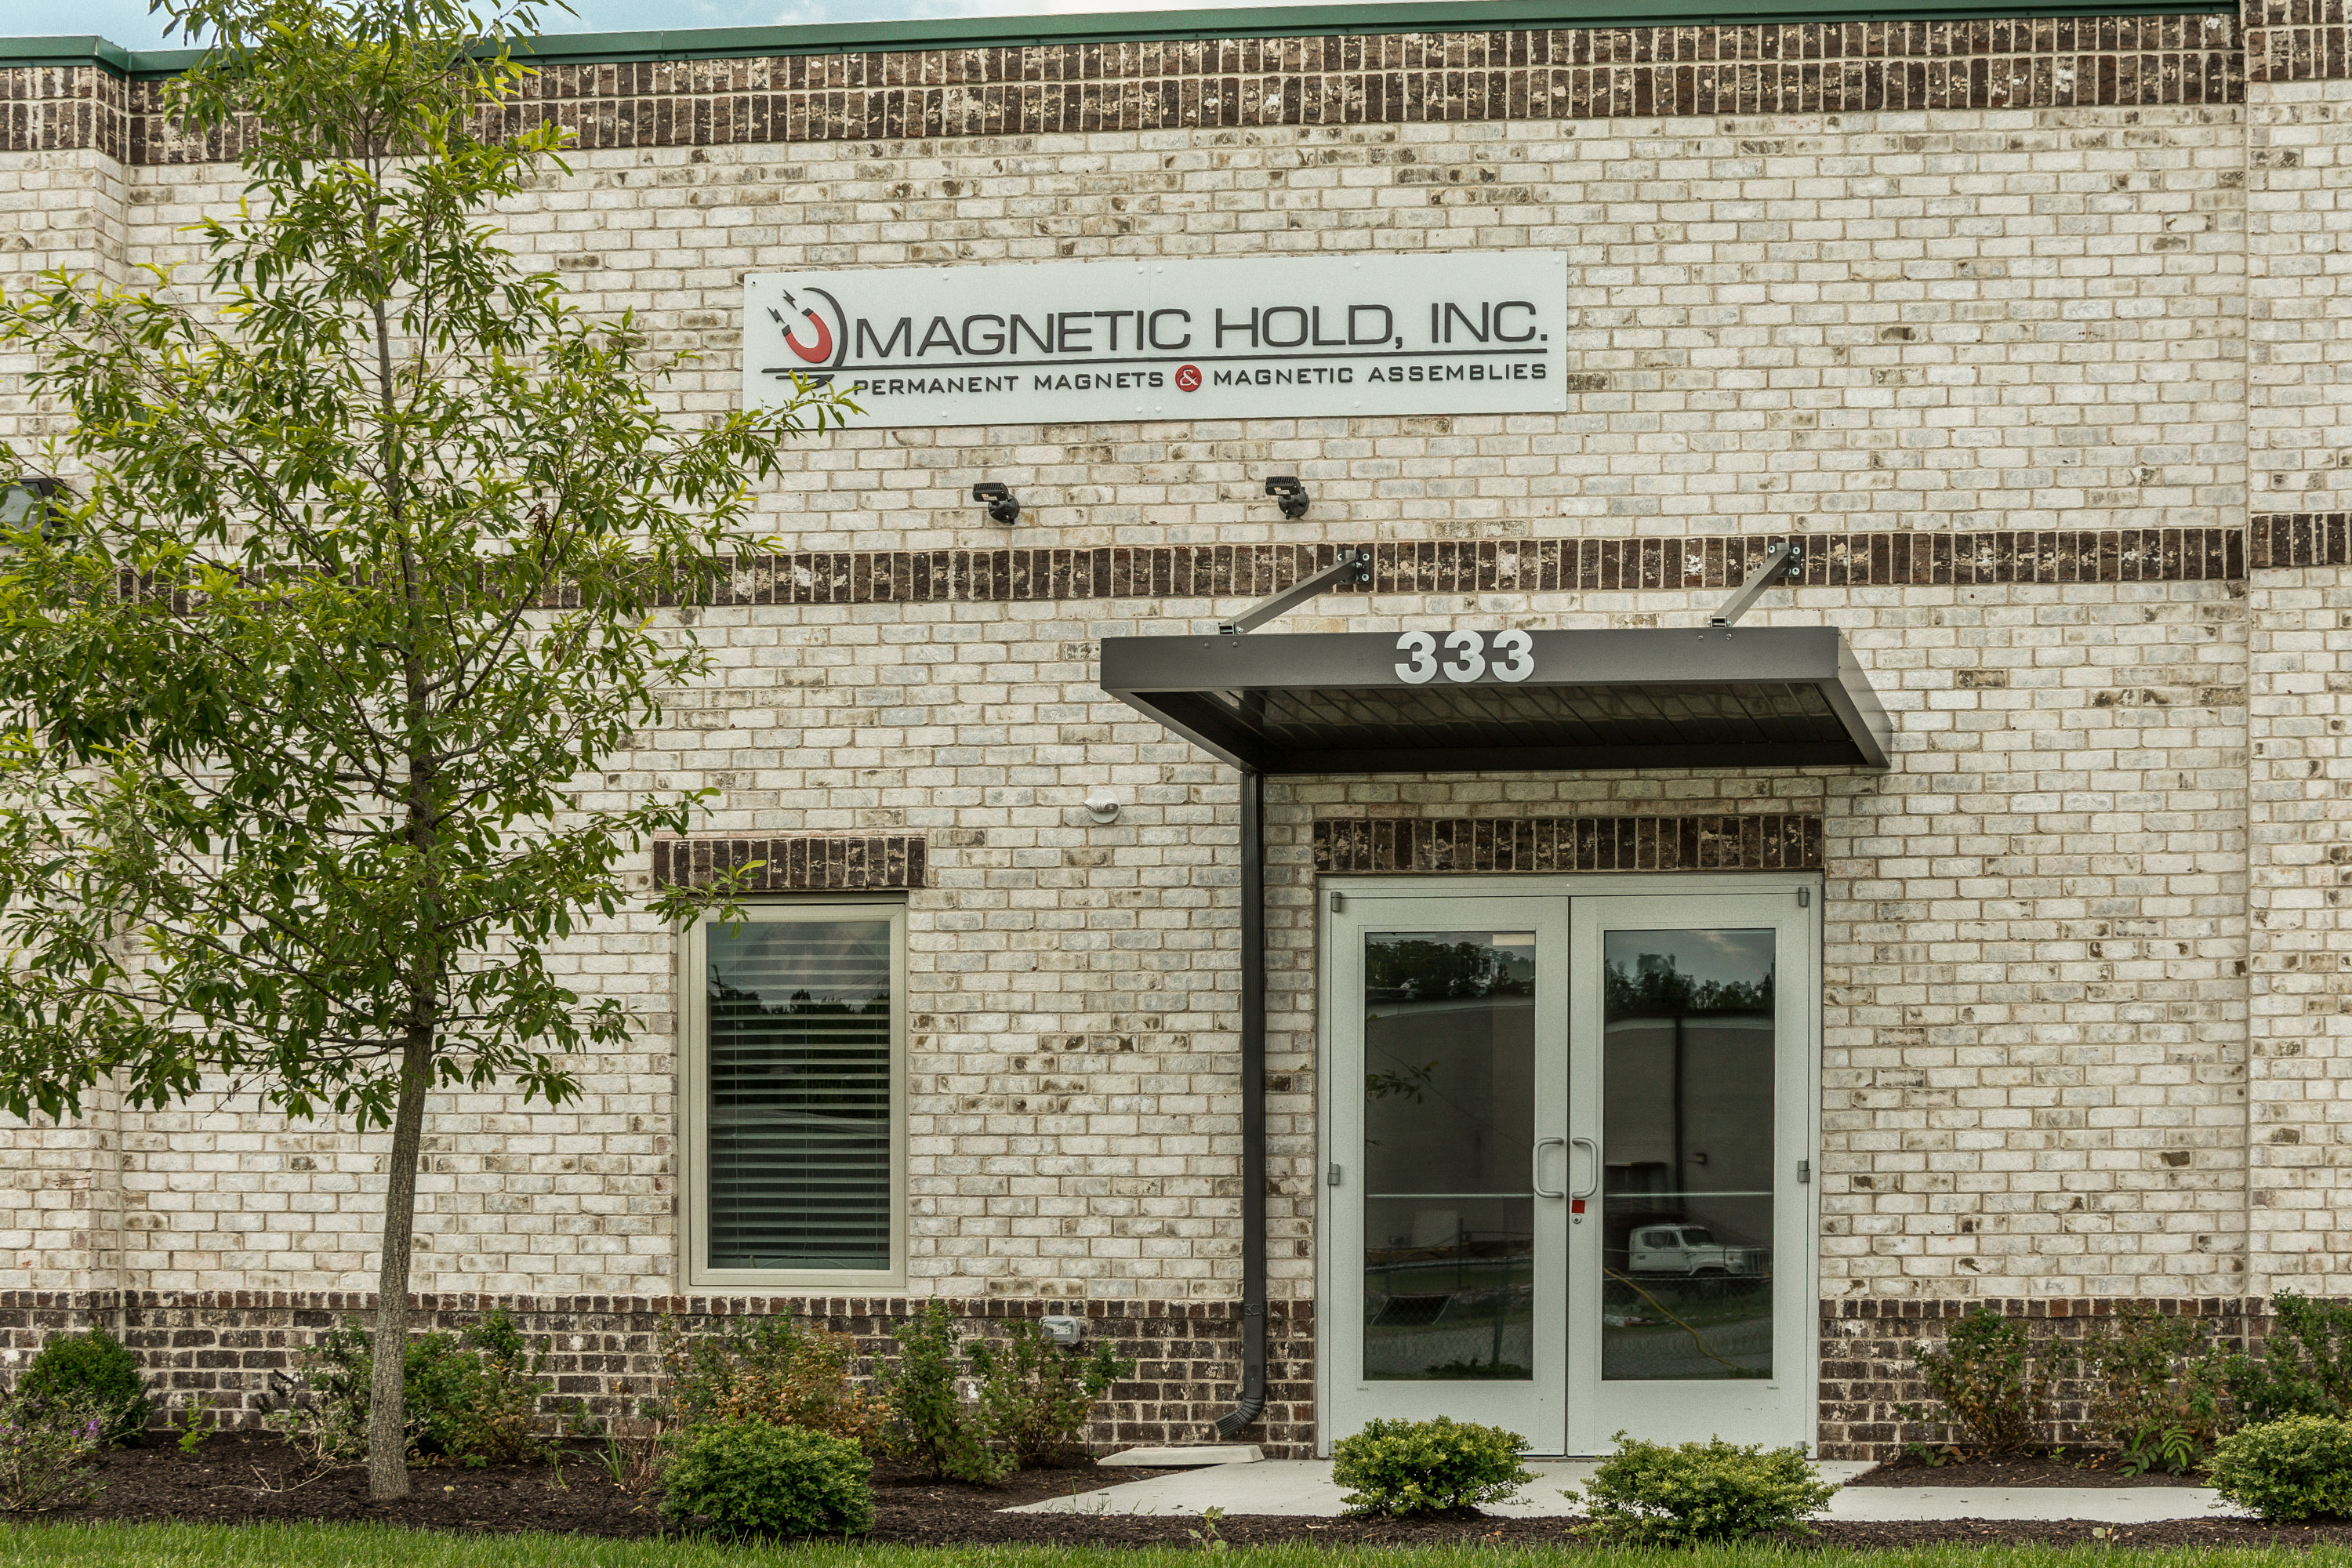 magnetic hold facility in rockland